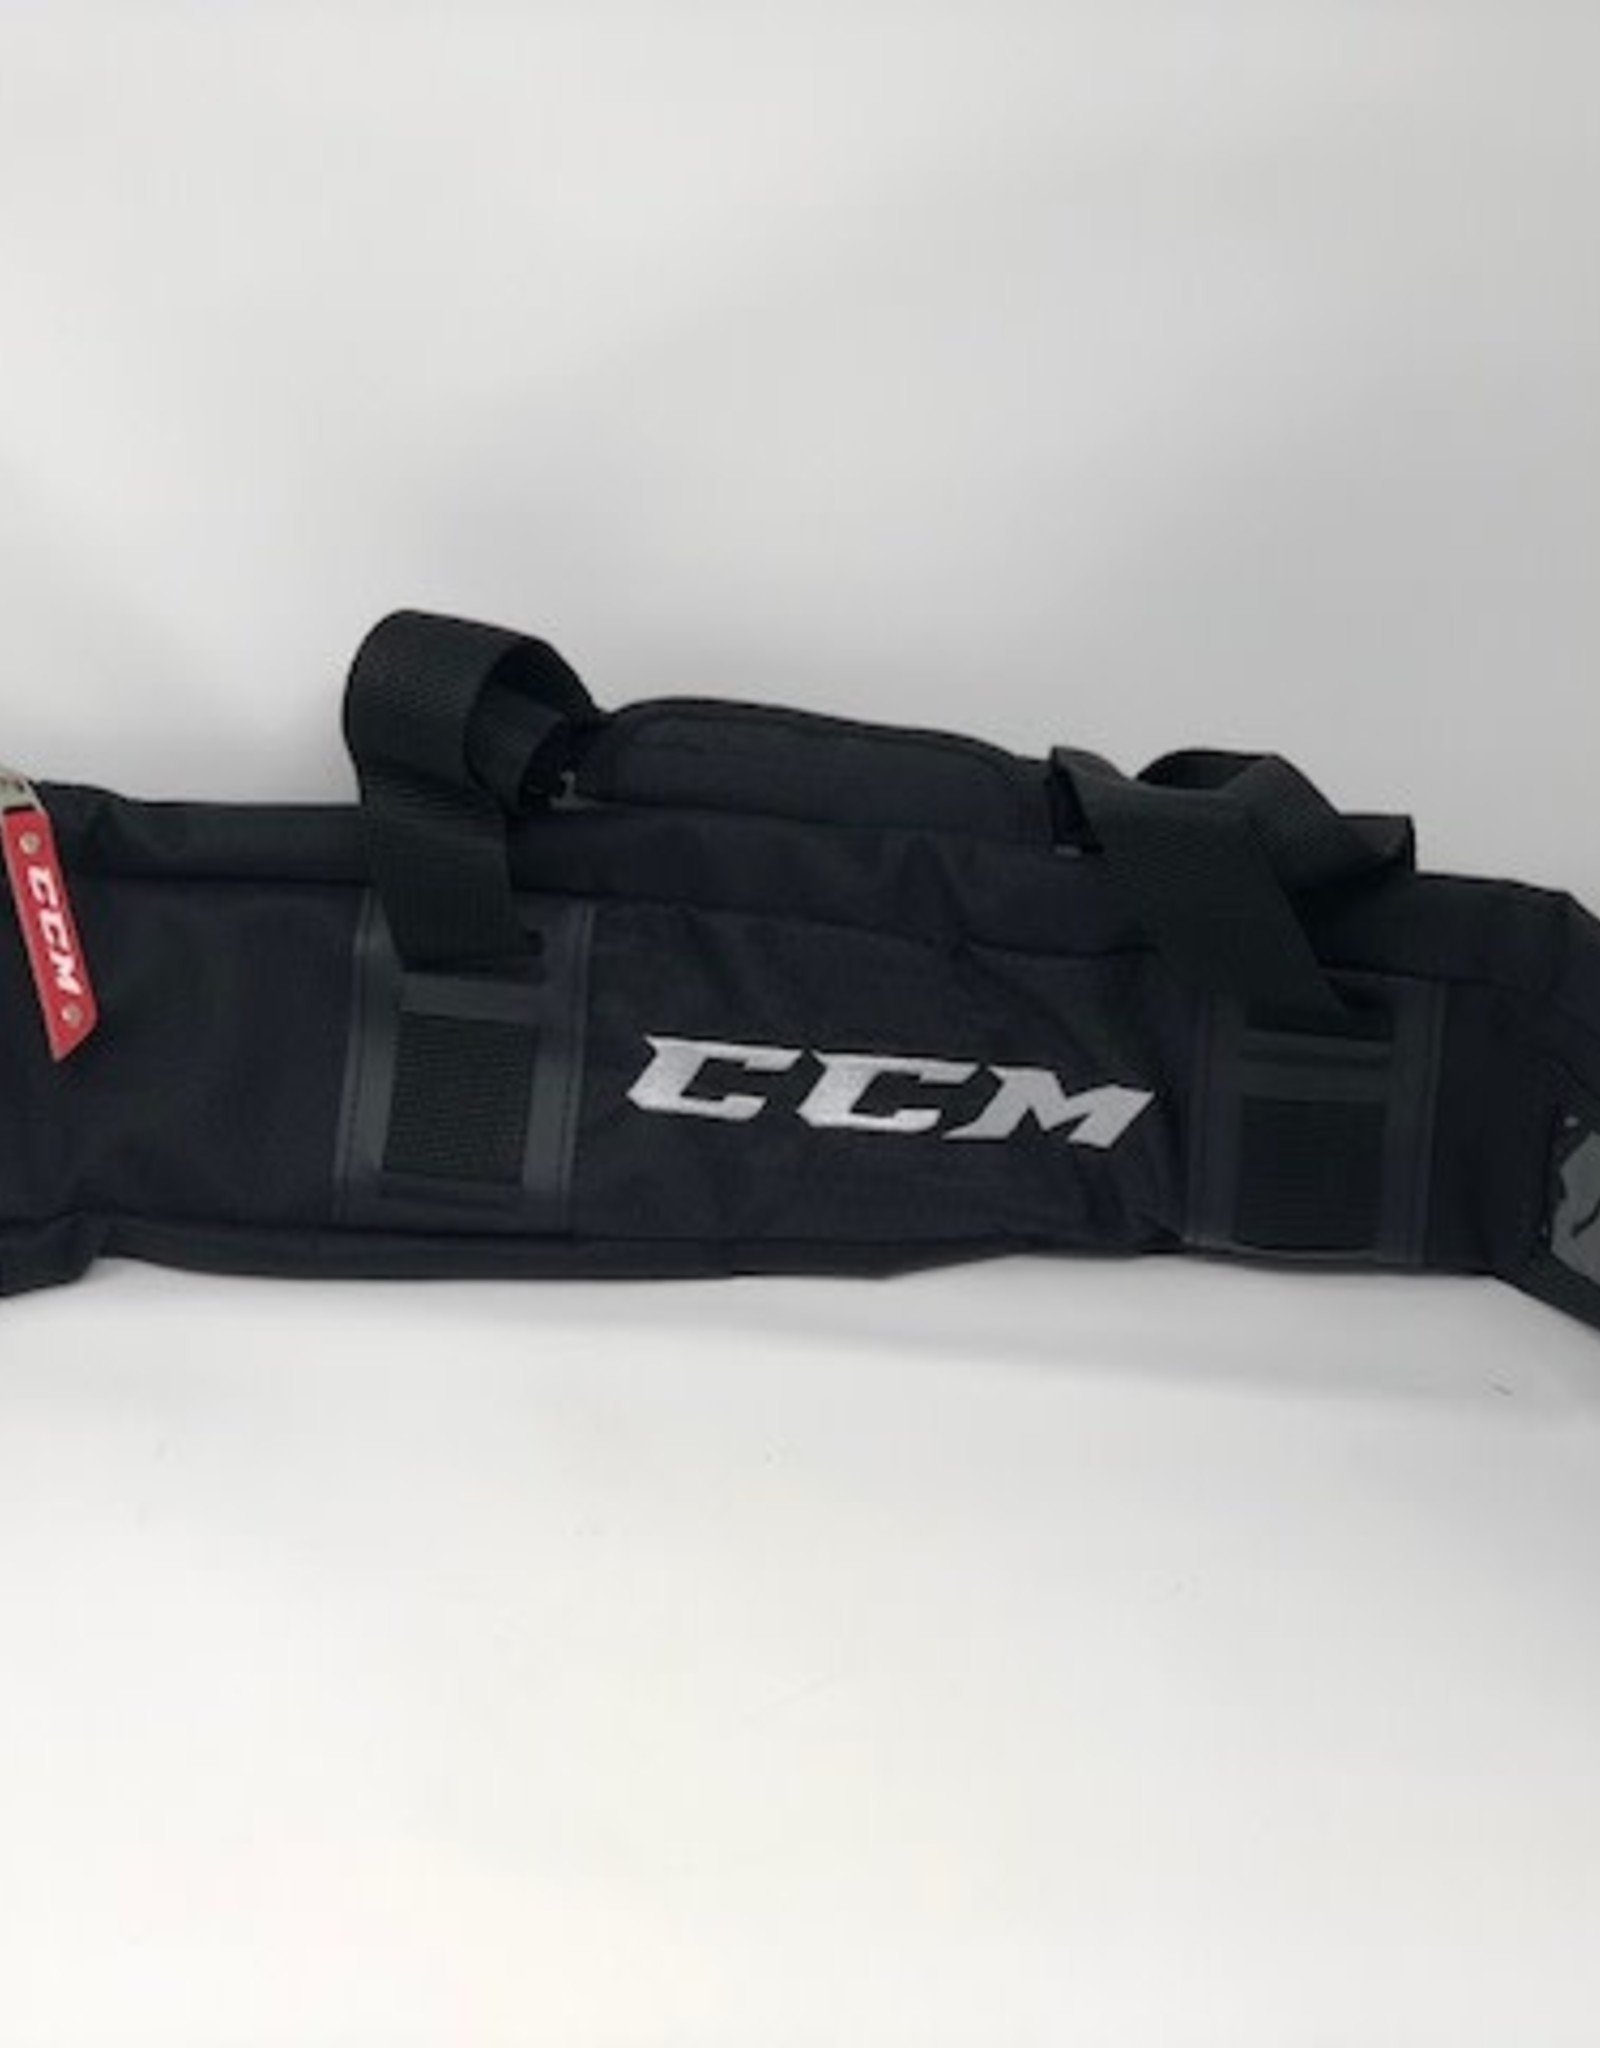 CCM CCM Mini Stick Bag